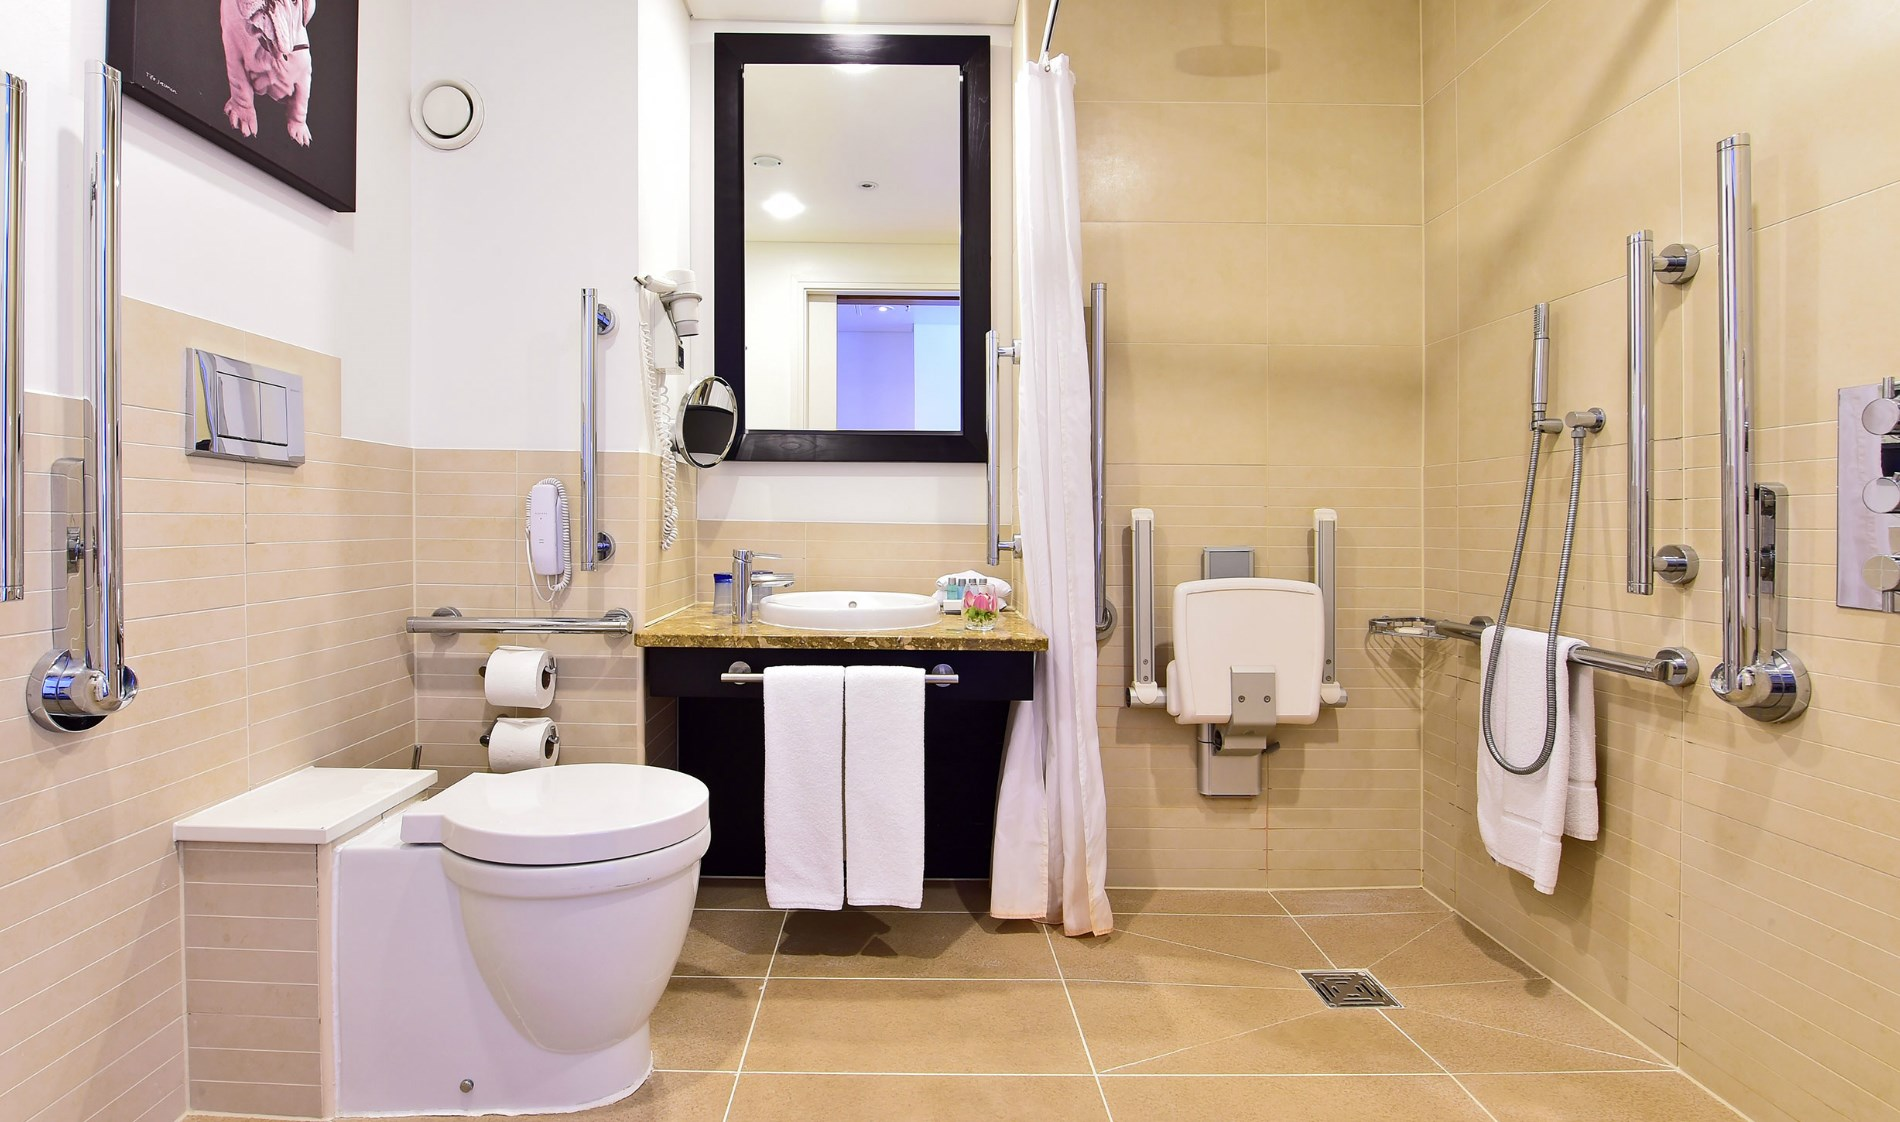 Luxury Hotel in London Deluxe Disability Access Room